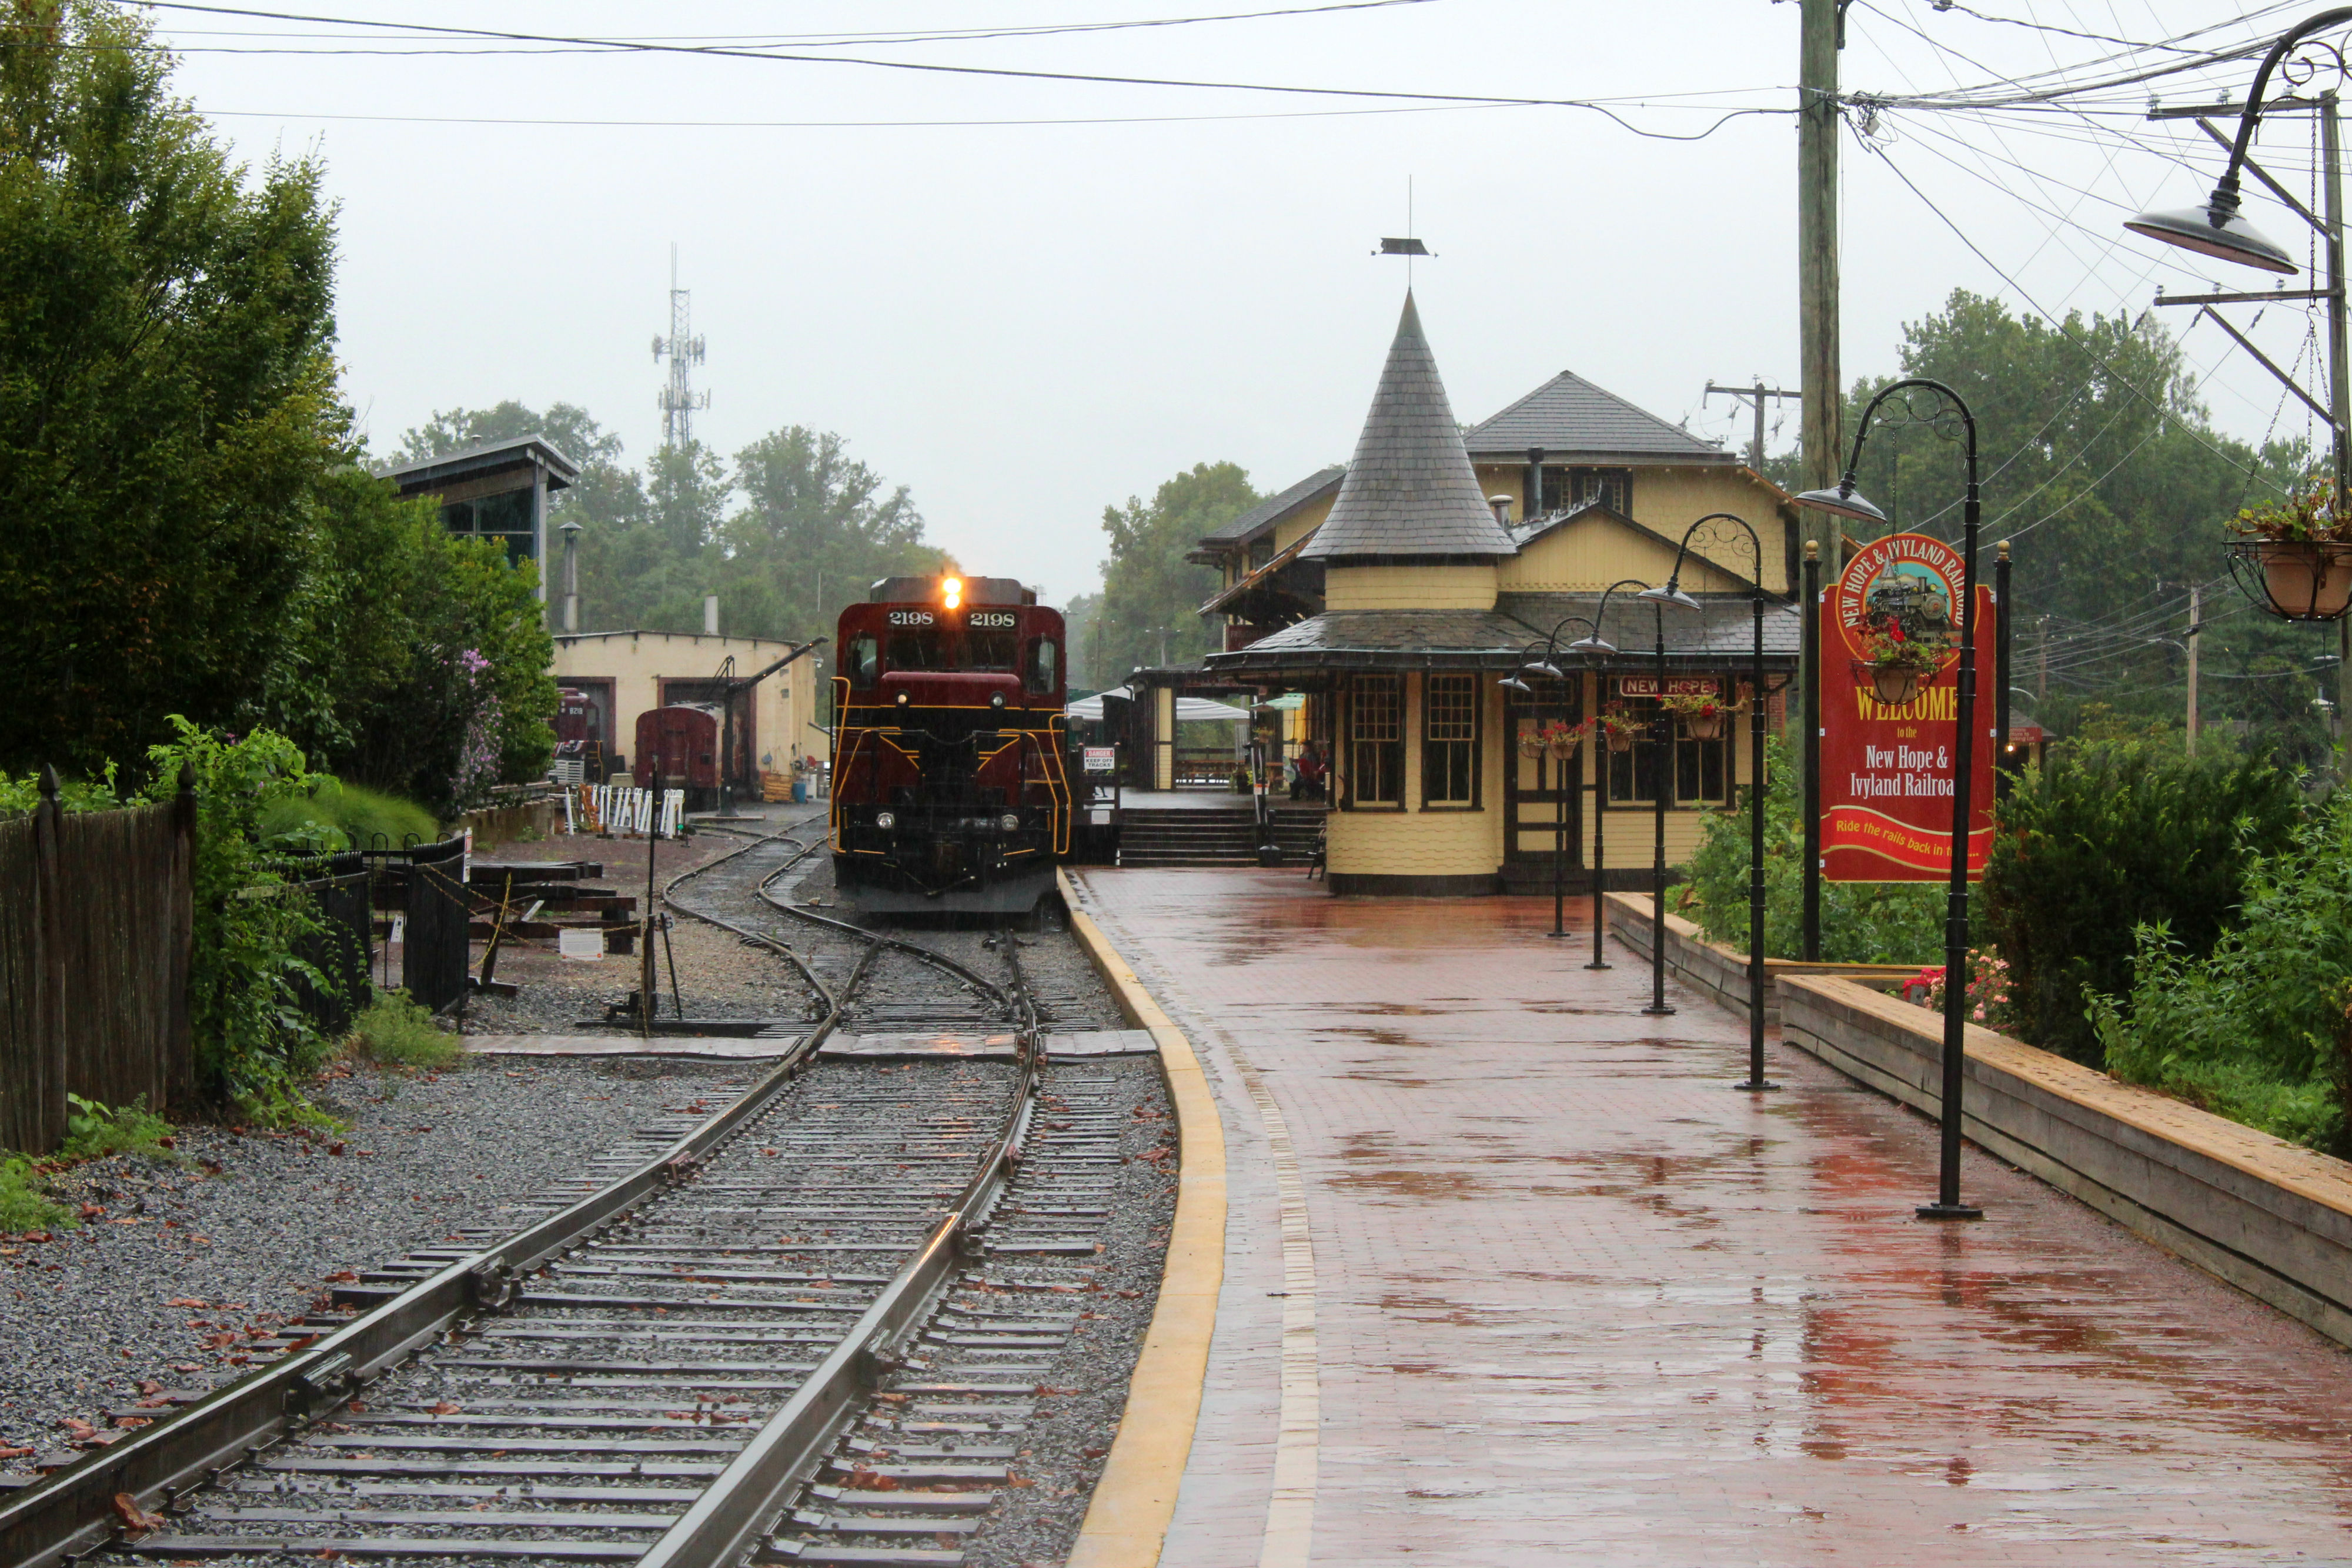 The New Hope & Ivyland Railroad is one of the main tourist attractions in the town. Hope aboard for some sight-seeing in the hills of Bucks County. The railroad also has Haunted Halloween excursion rides coming up Oct. 11-31 for those who want to take a trip this October!{ }(Image: Julie Gallagher)